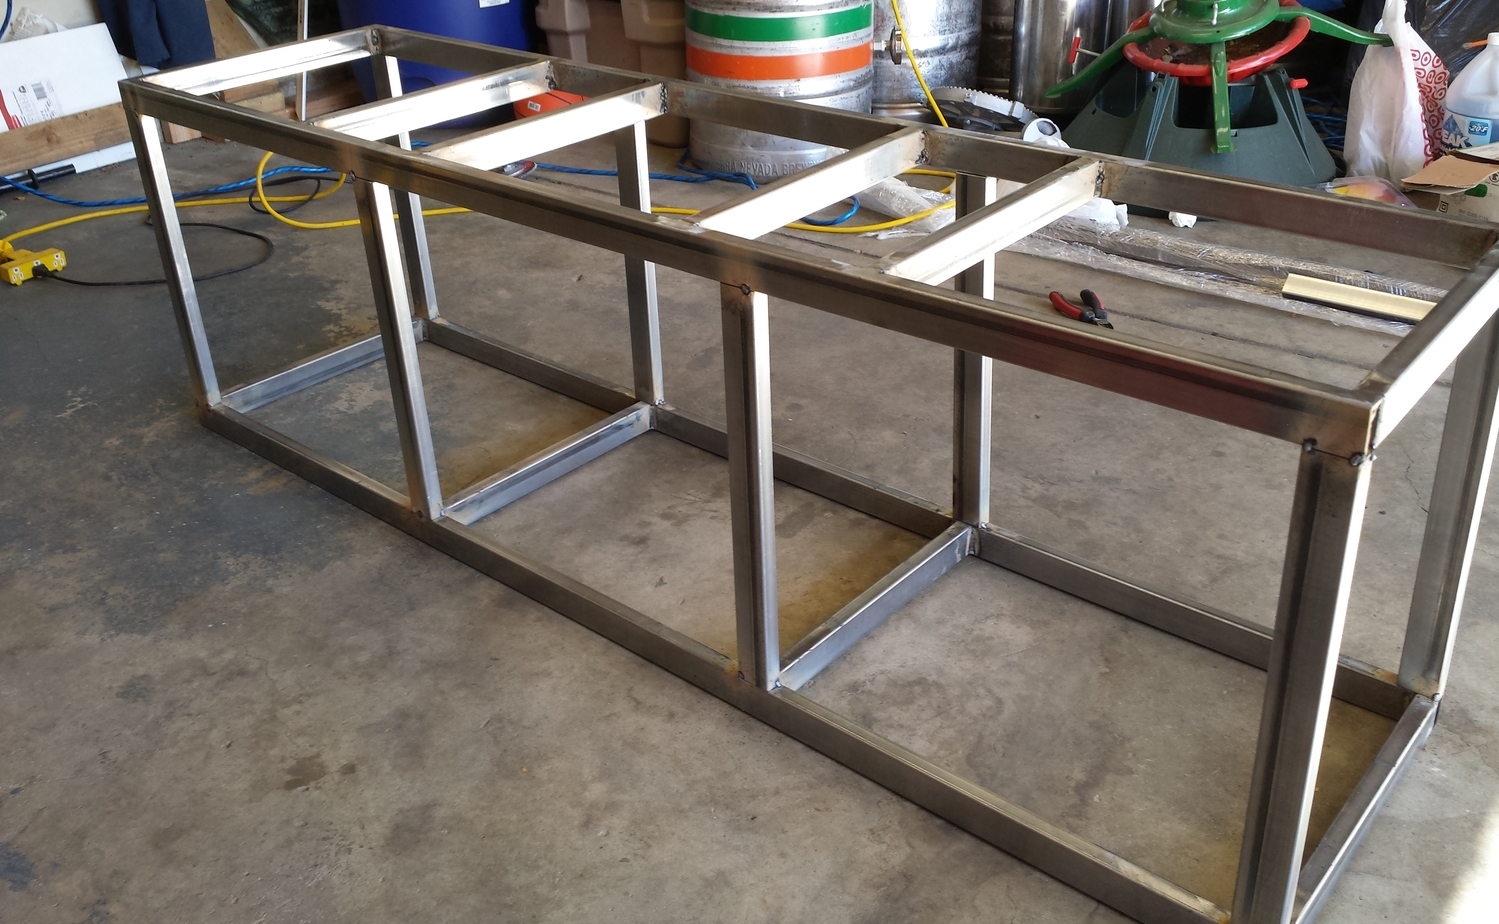 The new brew stand taking shape in the garage.